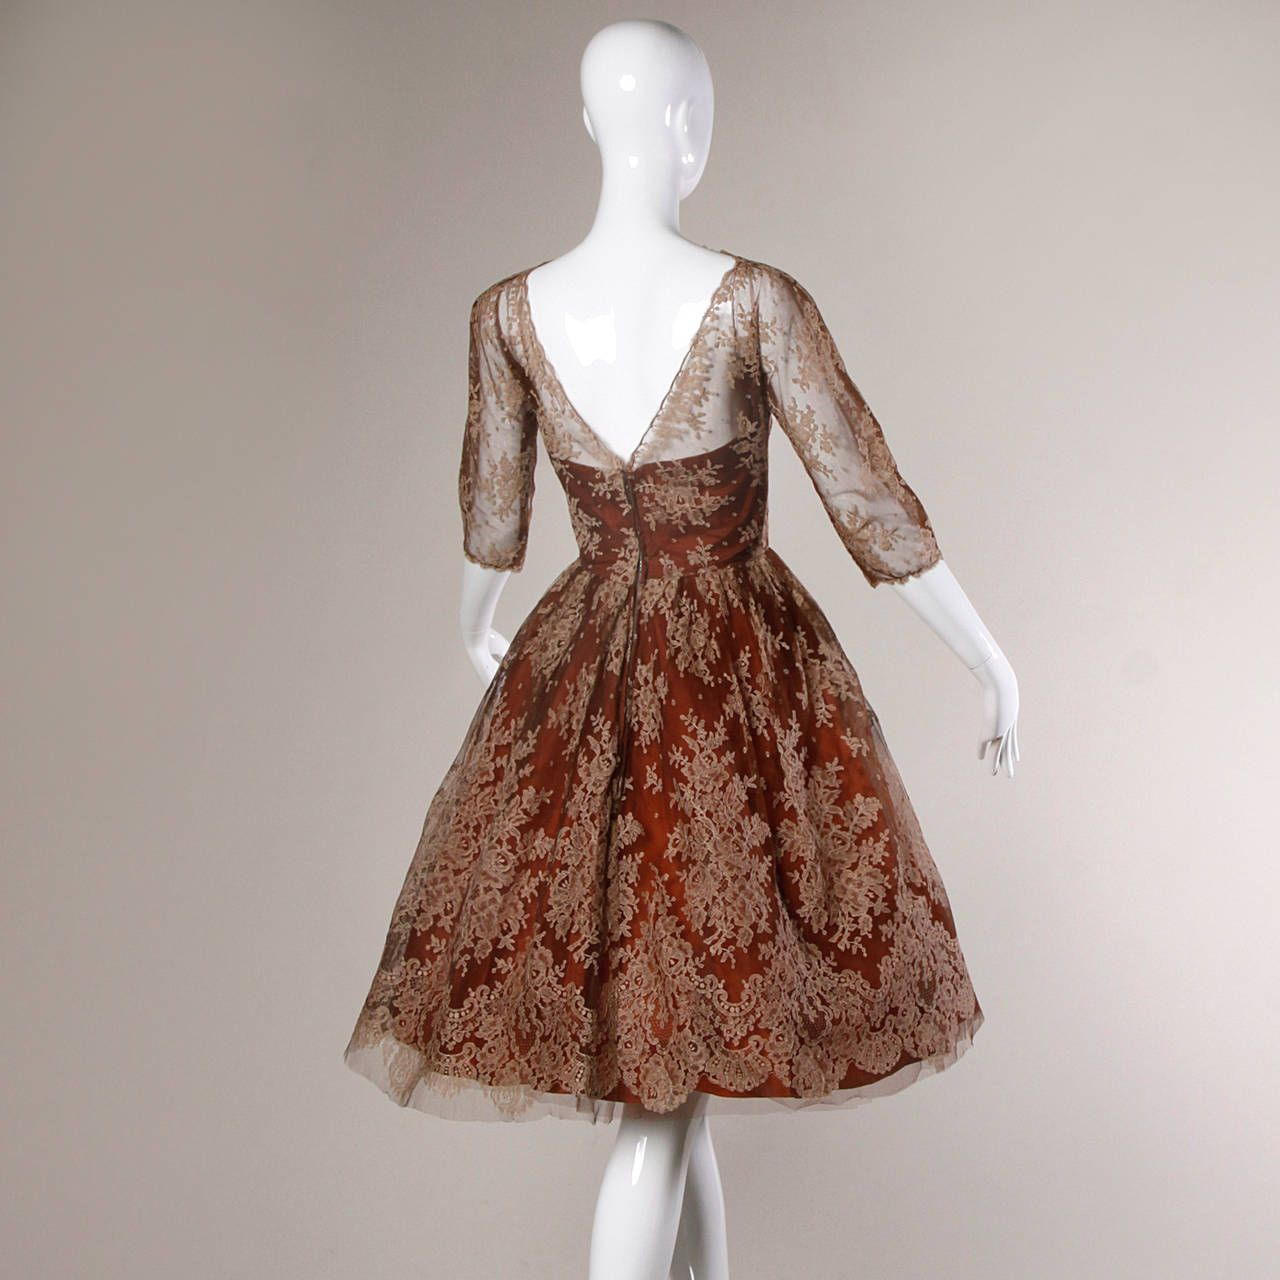 Dreamy 1950s Vintage Brown Tulle Chantilly Lace Cocktail Dress Cocktail Dress Vintage Evening Dresses Vintage Cocktail Dress Lace [ 1280 x 1280 Pixel ]